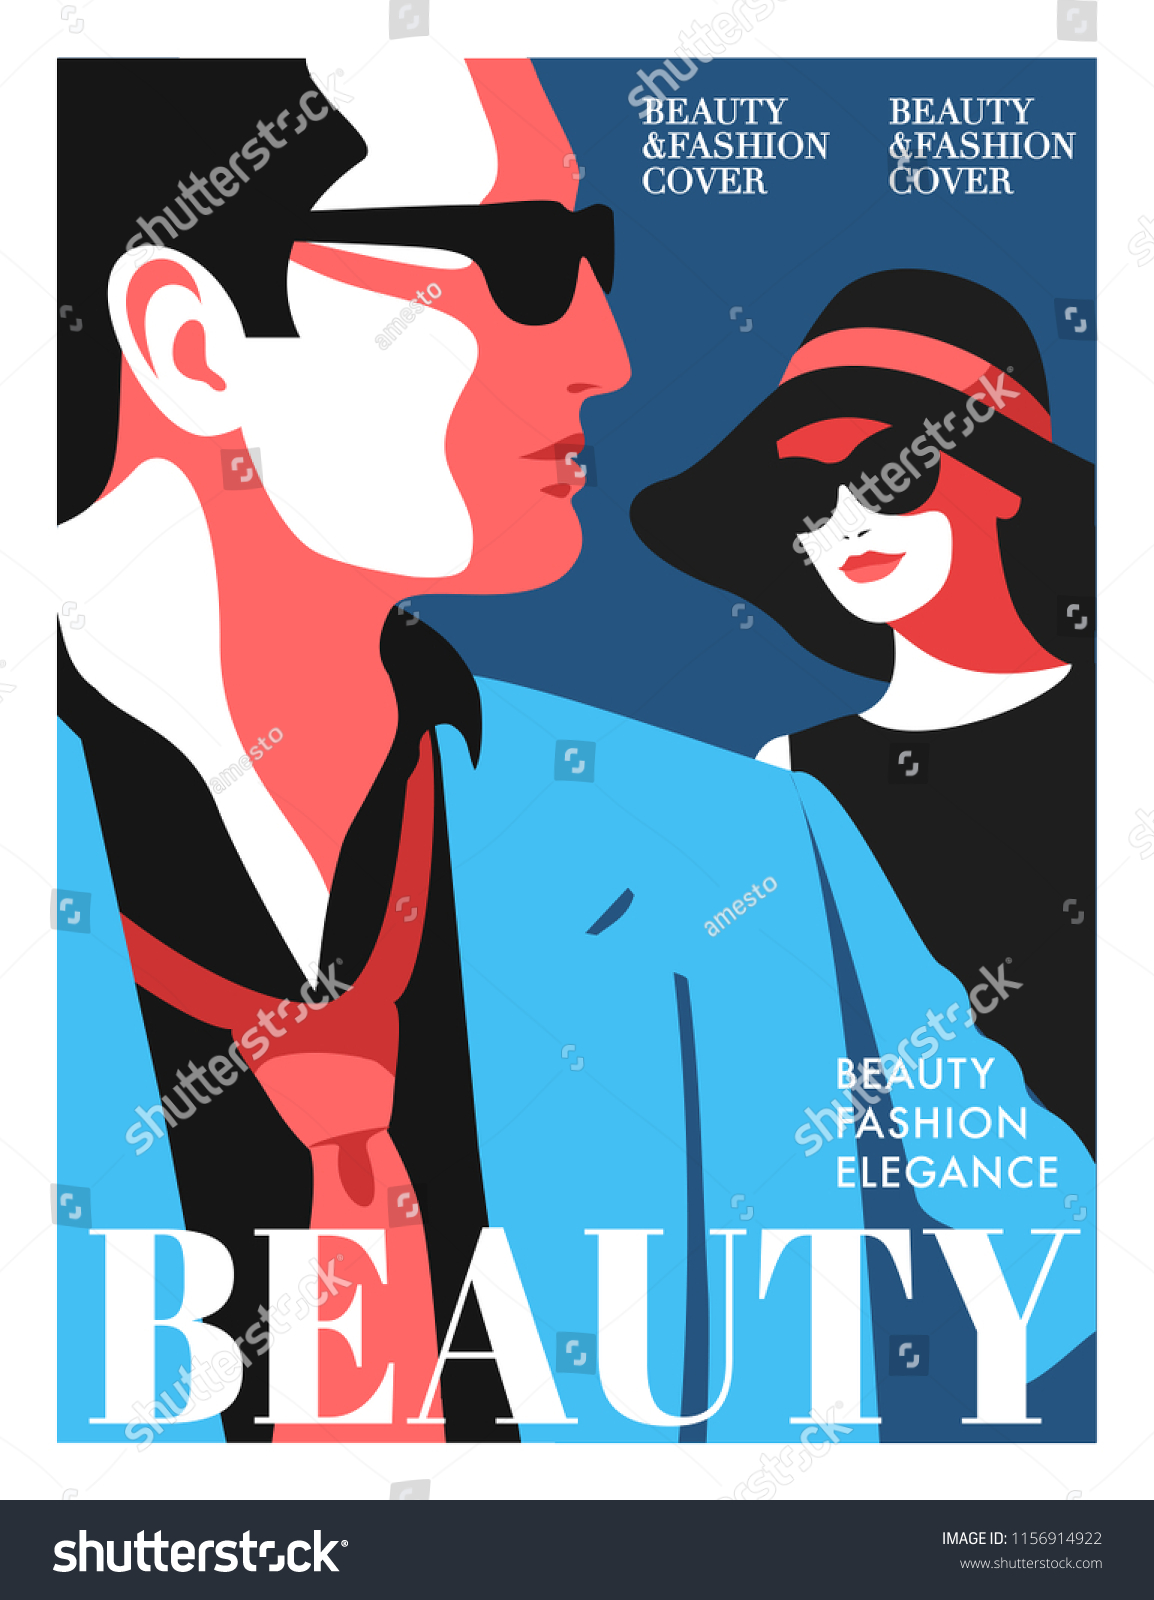 Women Fashion Magazine Cover Design Abstract Stock Vector Royalty Free 1156914922